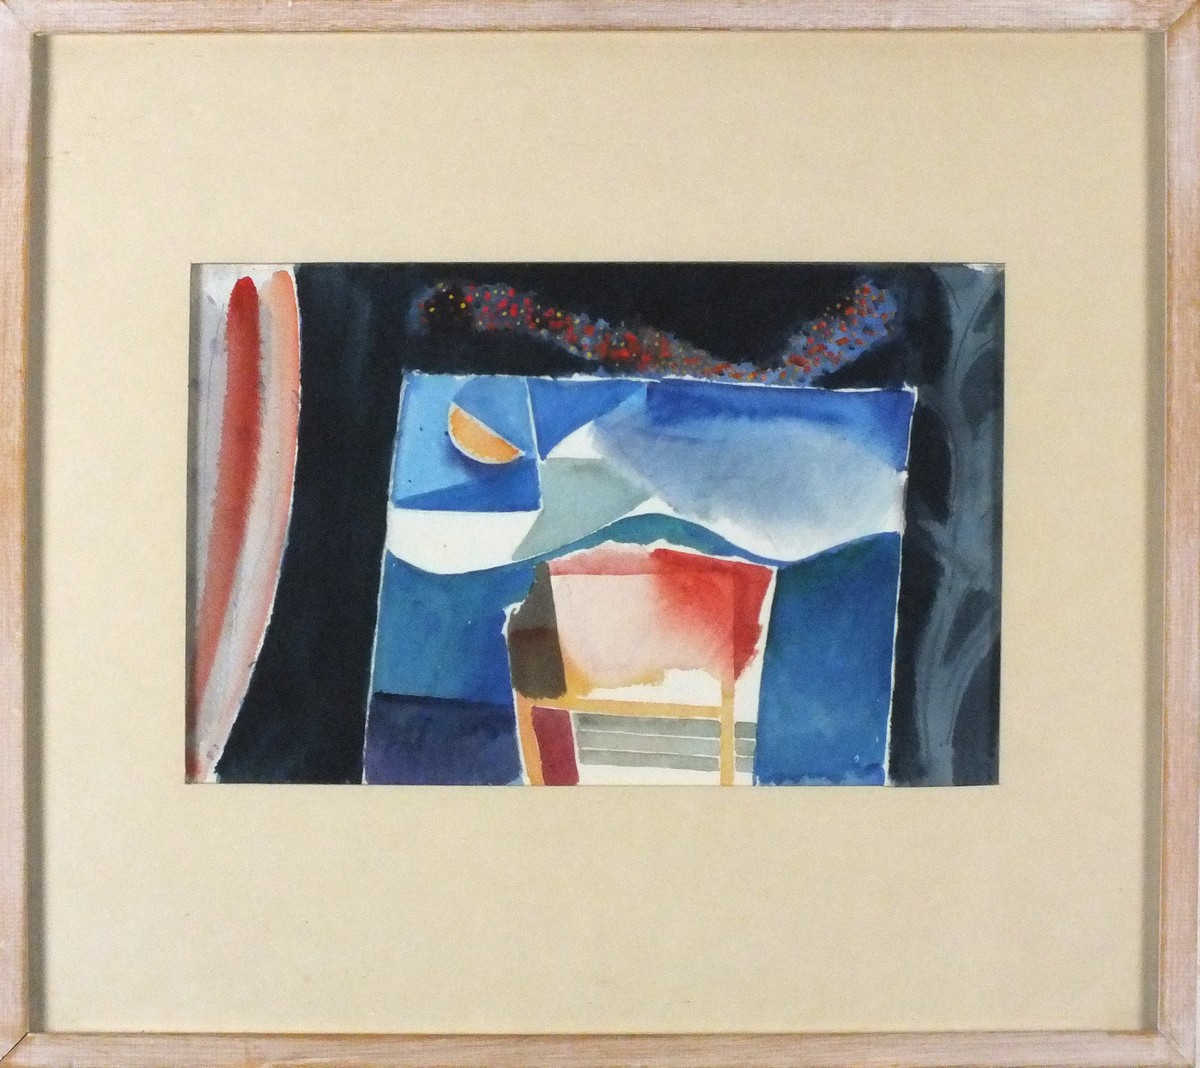 Lot 124 - Clive BLACKMORE (British b. 1940)Set for Marionettes with Moon, Watercolour, Label verso with